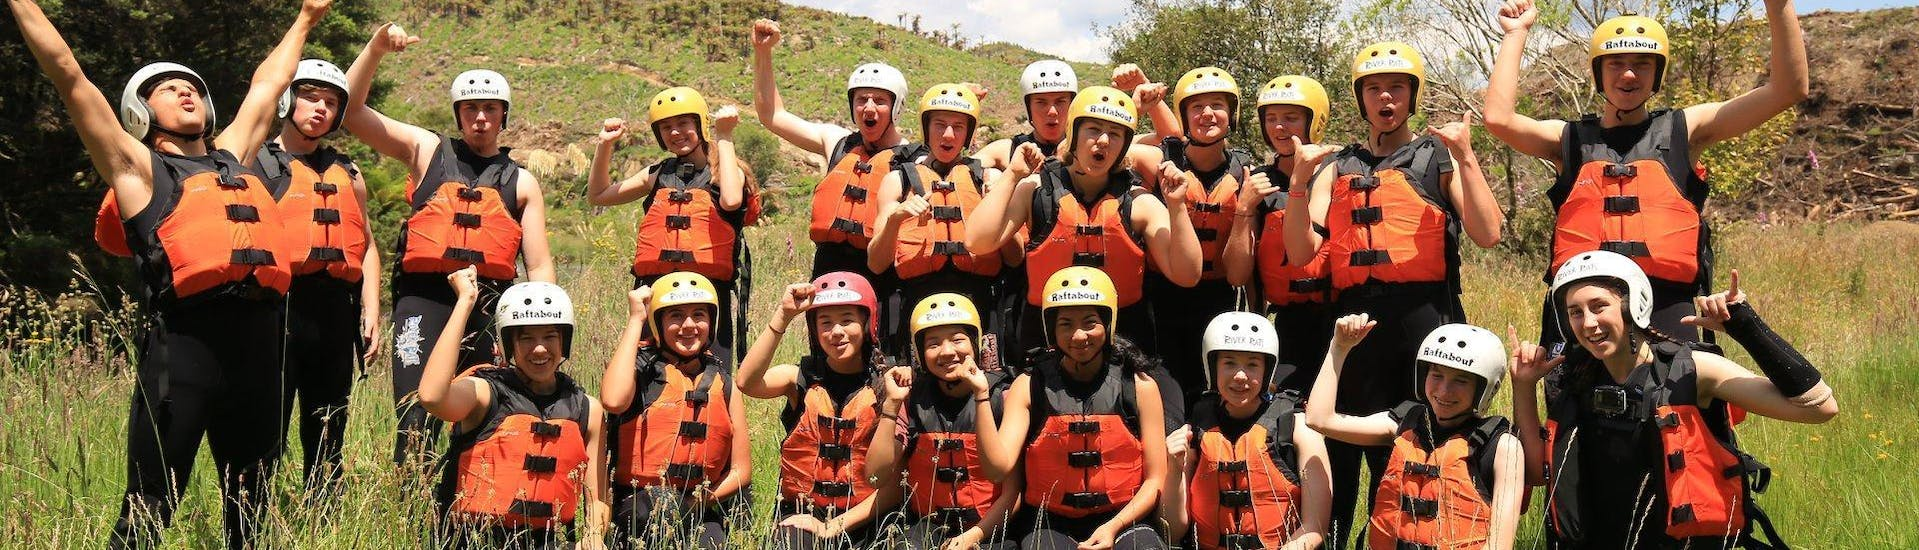 A group of rafters prepares for the rotorua rafting waterfall experience winter tour with  River Rats Rotorua Raft & Kayak.